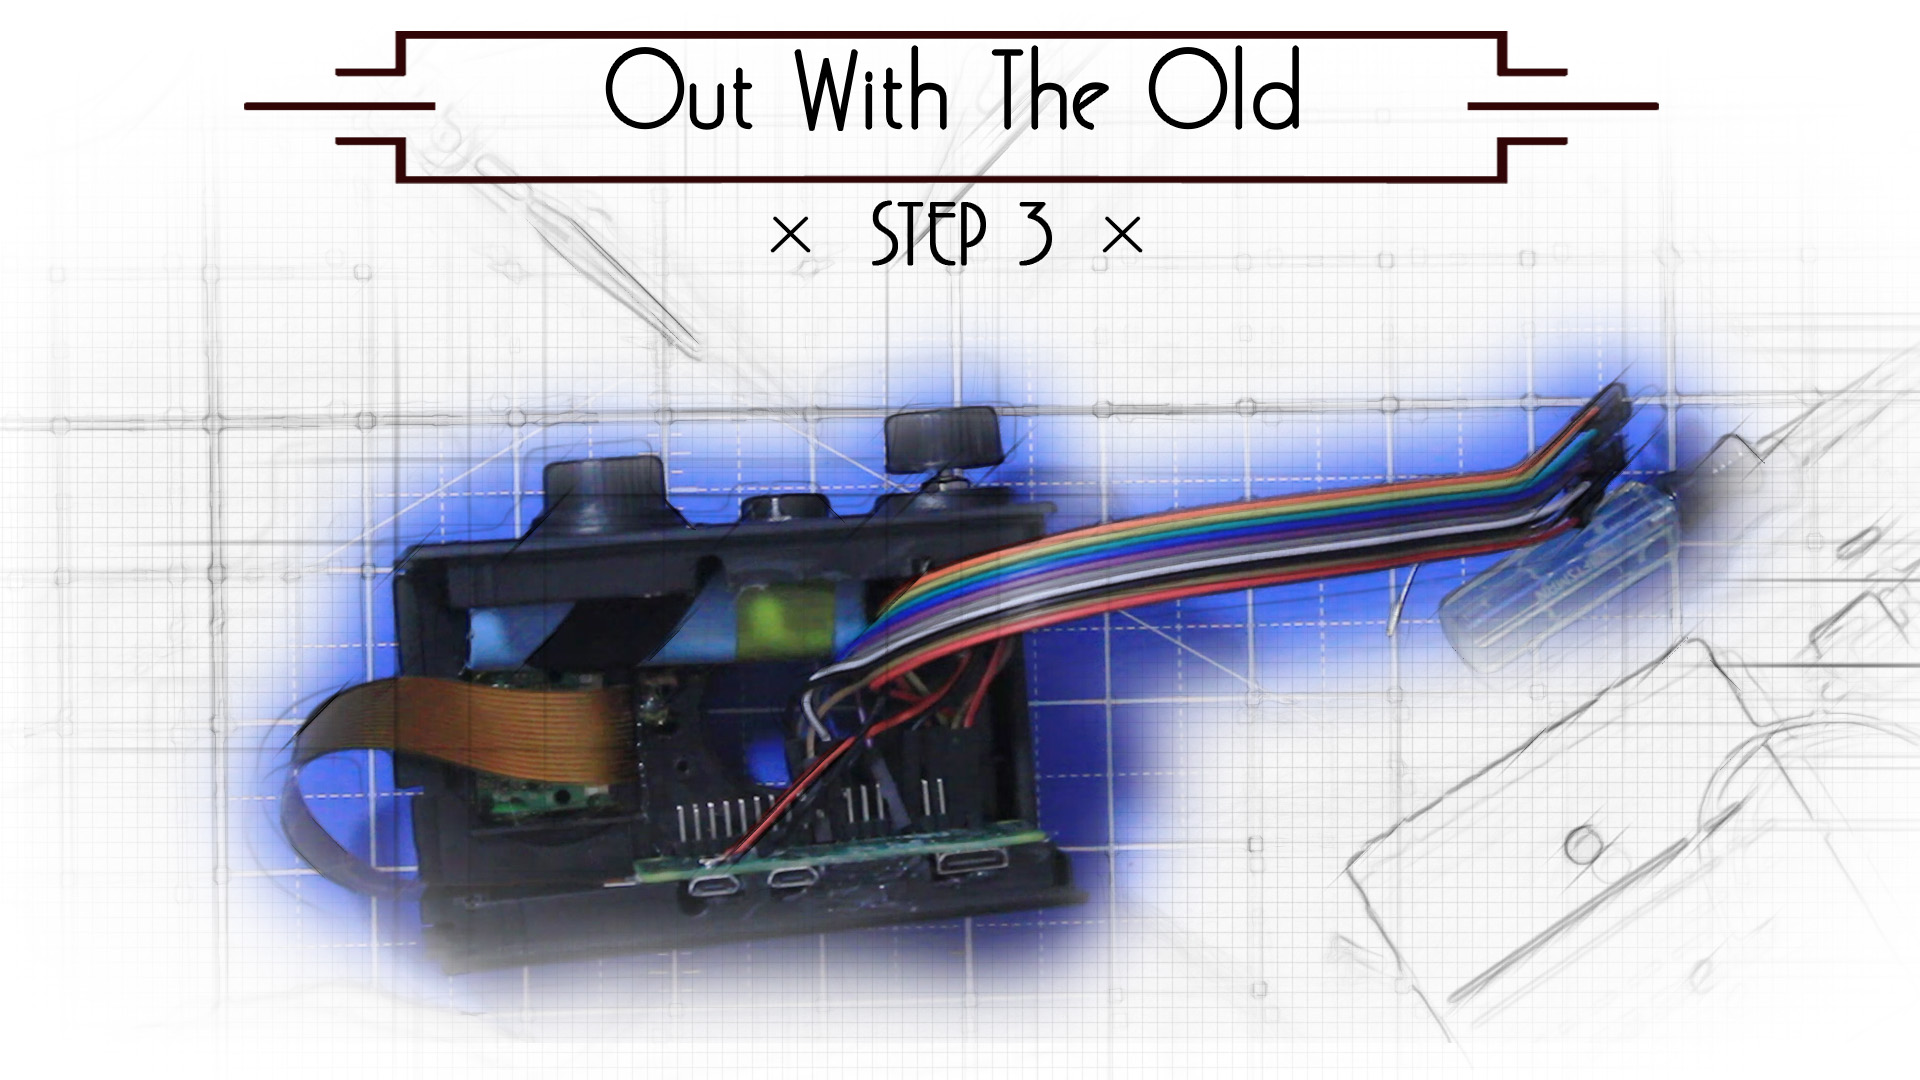 Figure 3 Wiring Schematics Should Be Used For All Wiring Jobs